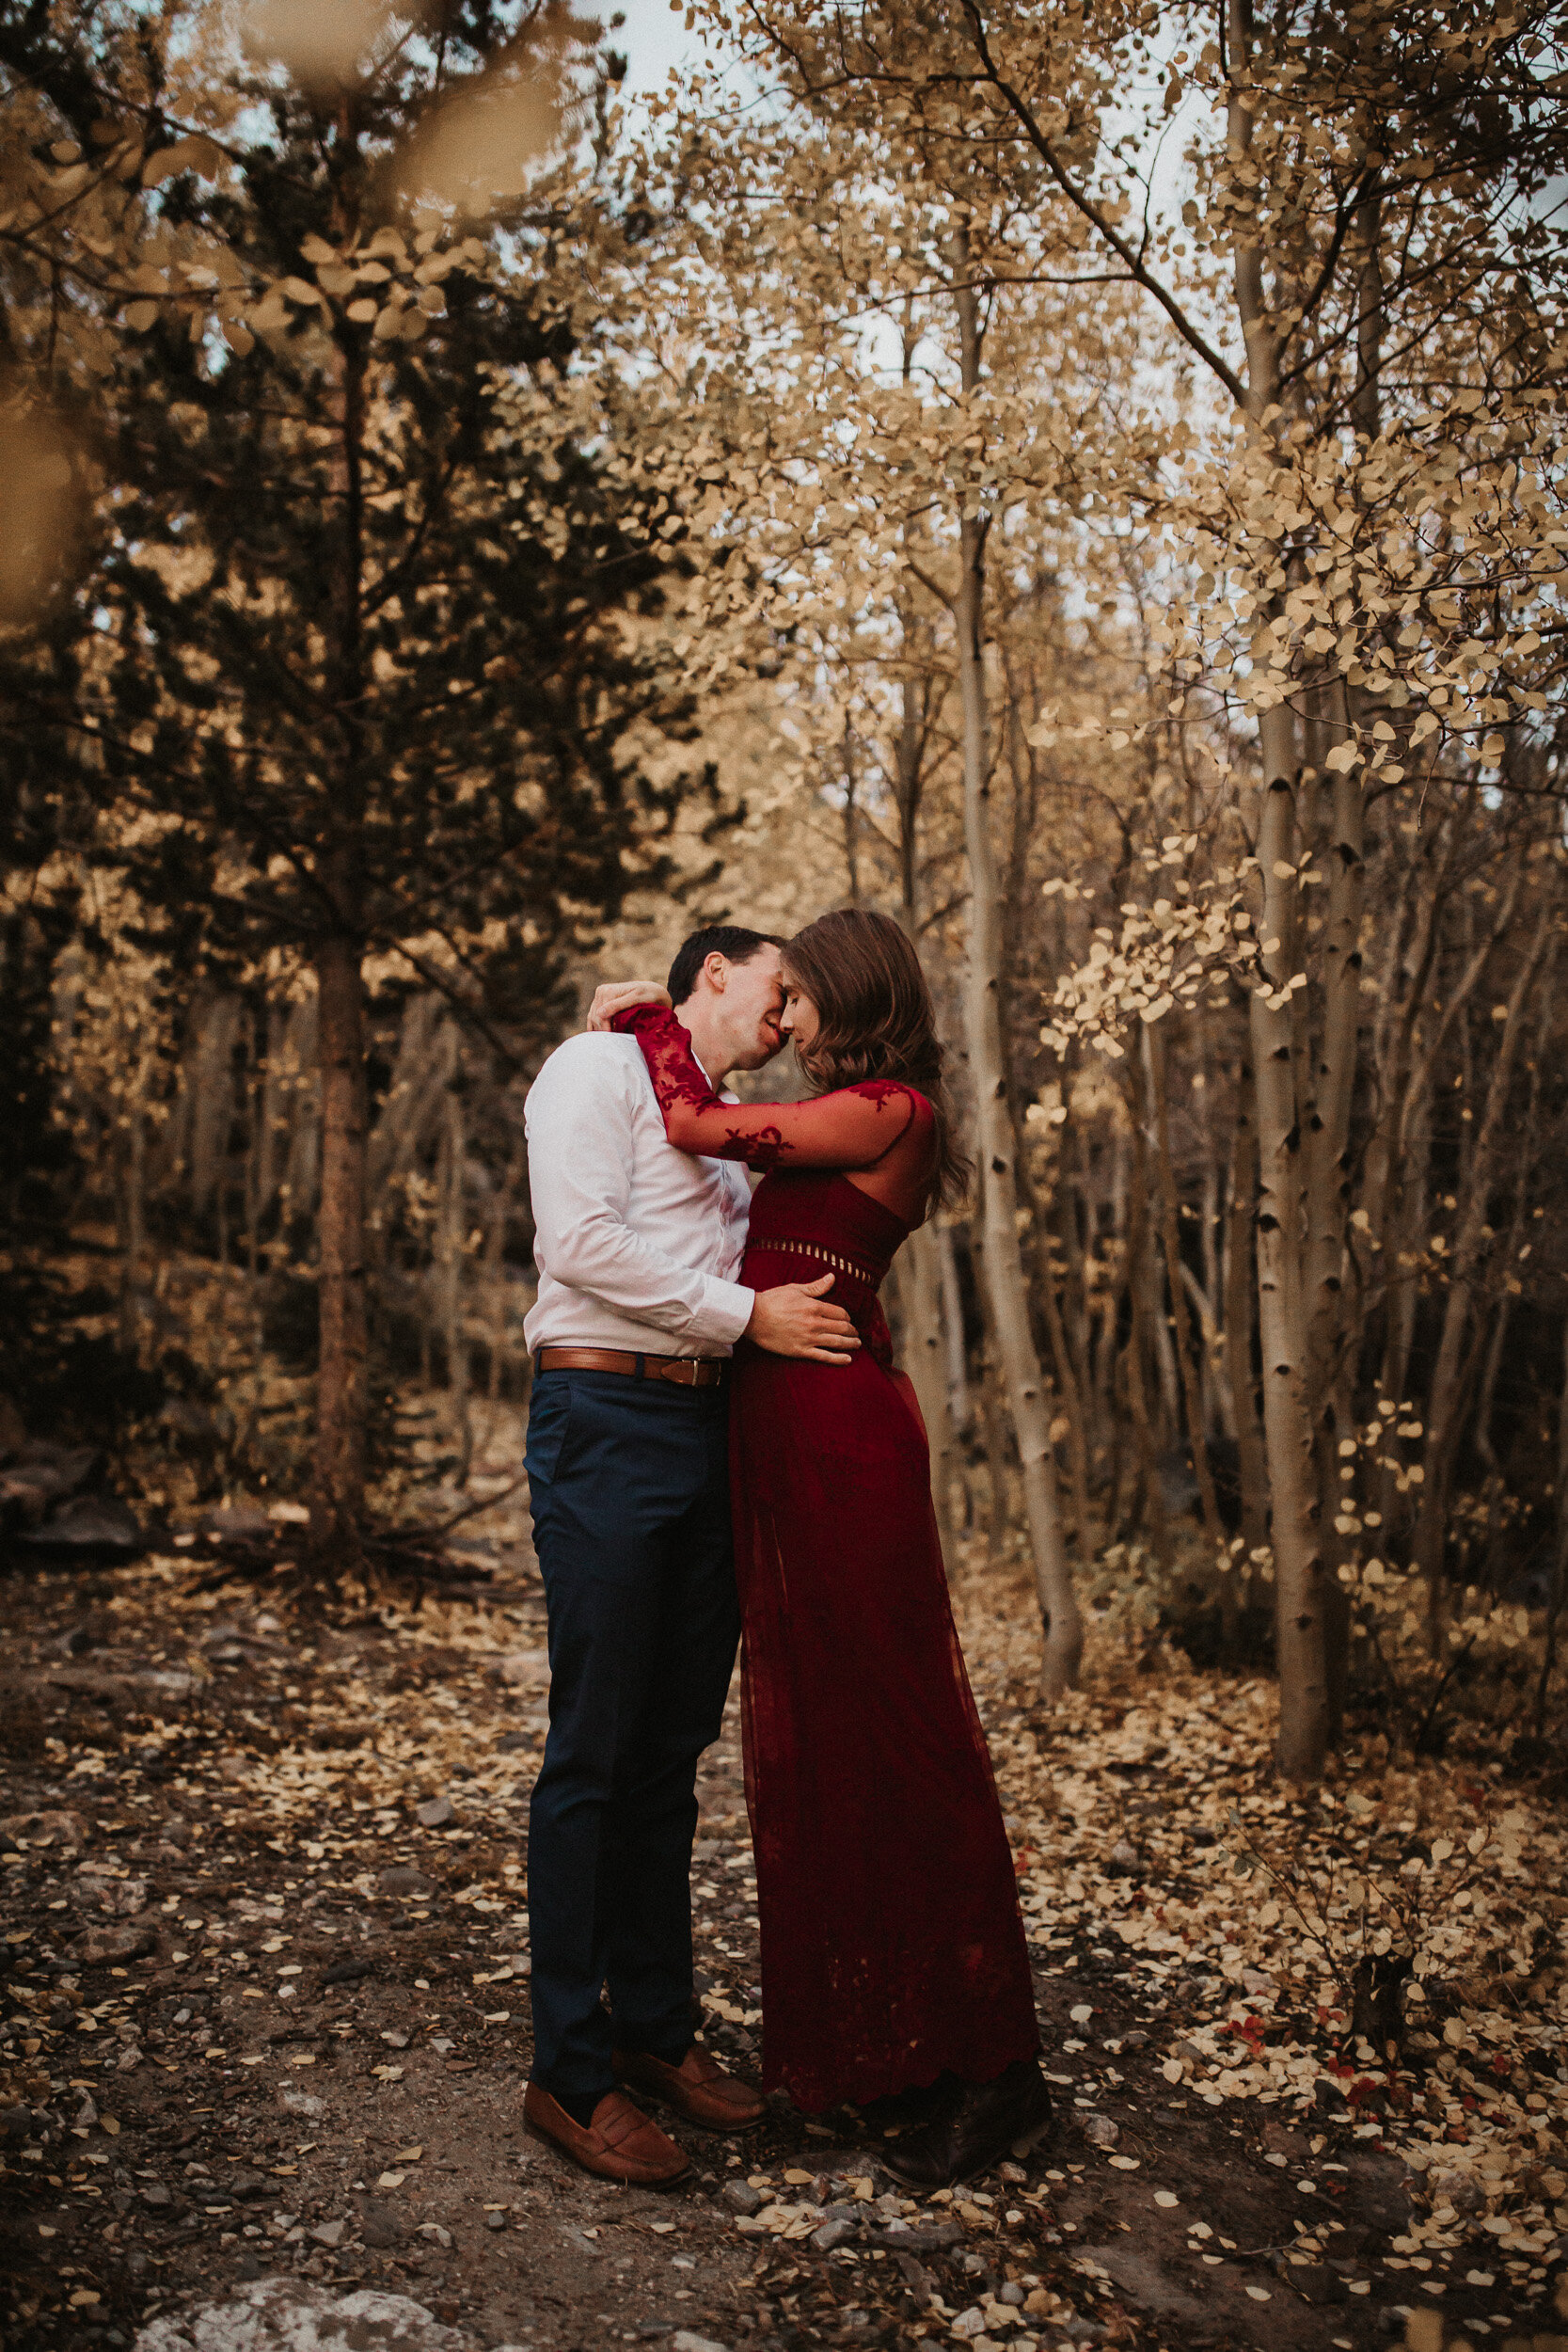 Claire_&_Matthew_Engagment_Breckenridge_Colorado_Fall_0794.jpg